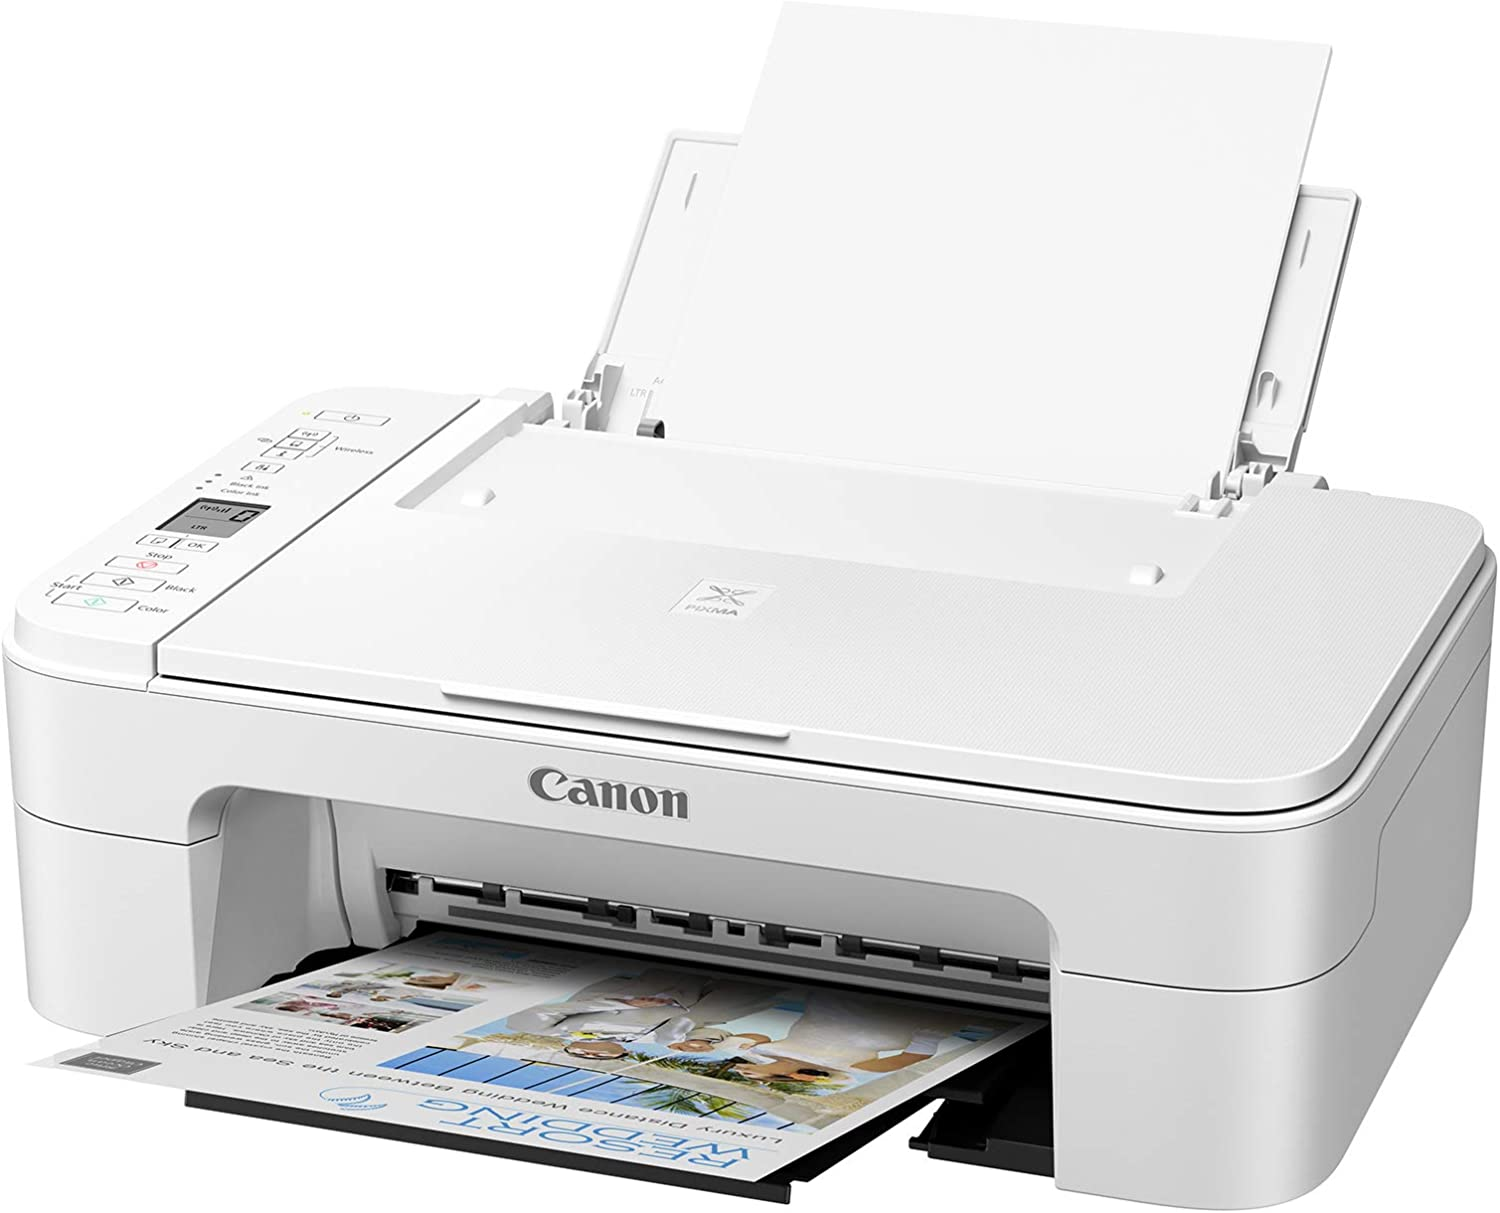 Canon TS3322 Wireless All in One Printer - White